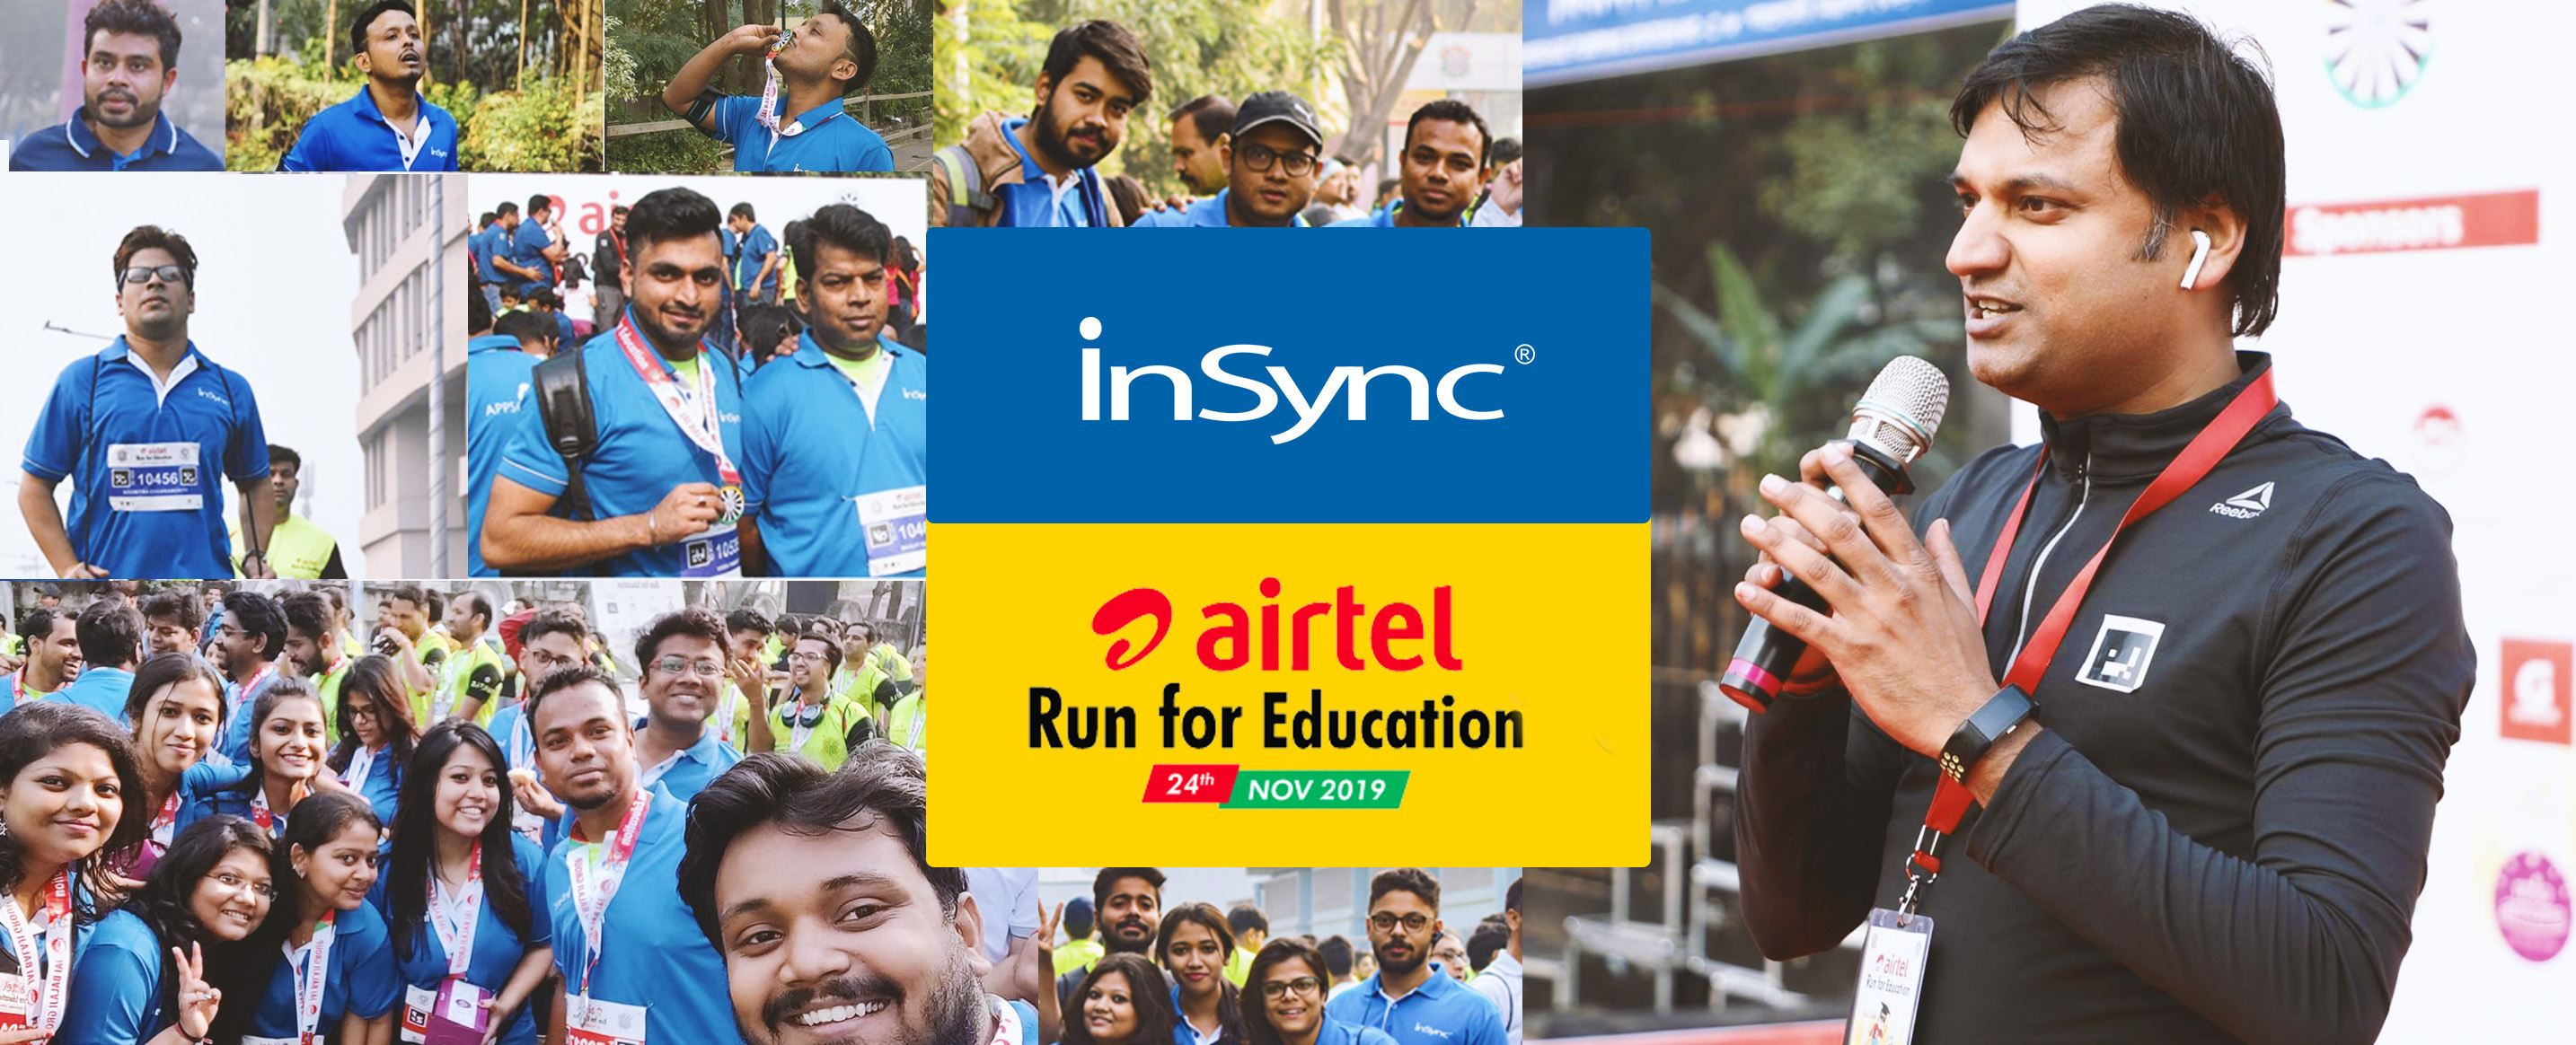 insync-gears-up-for-arfe-2019